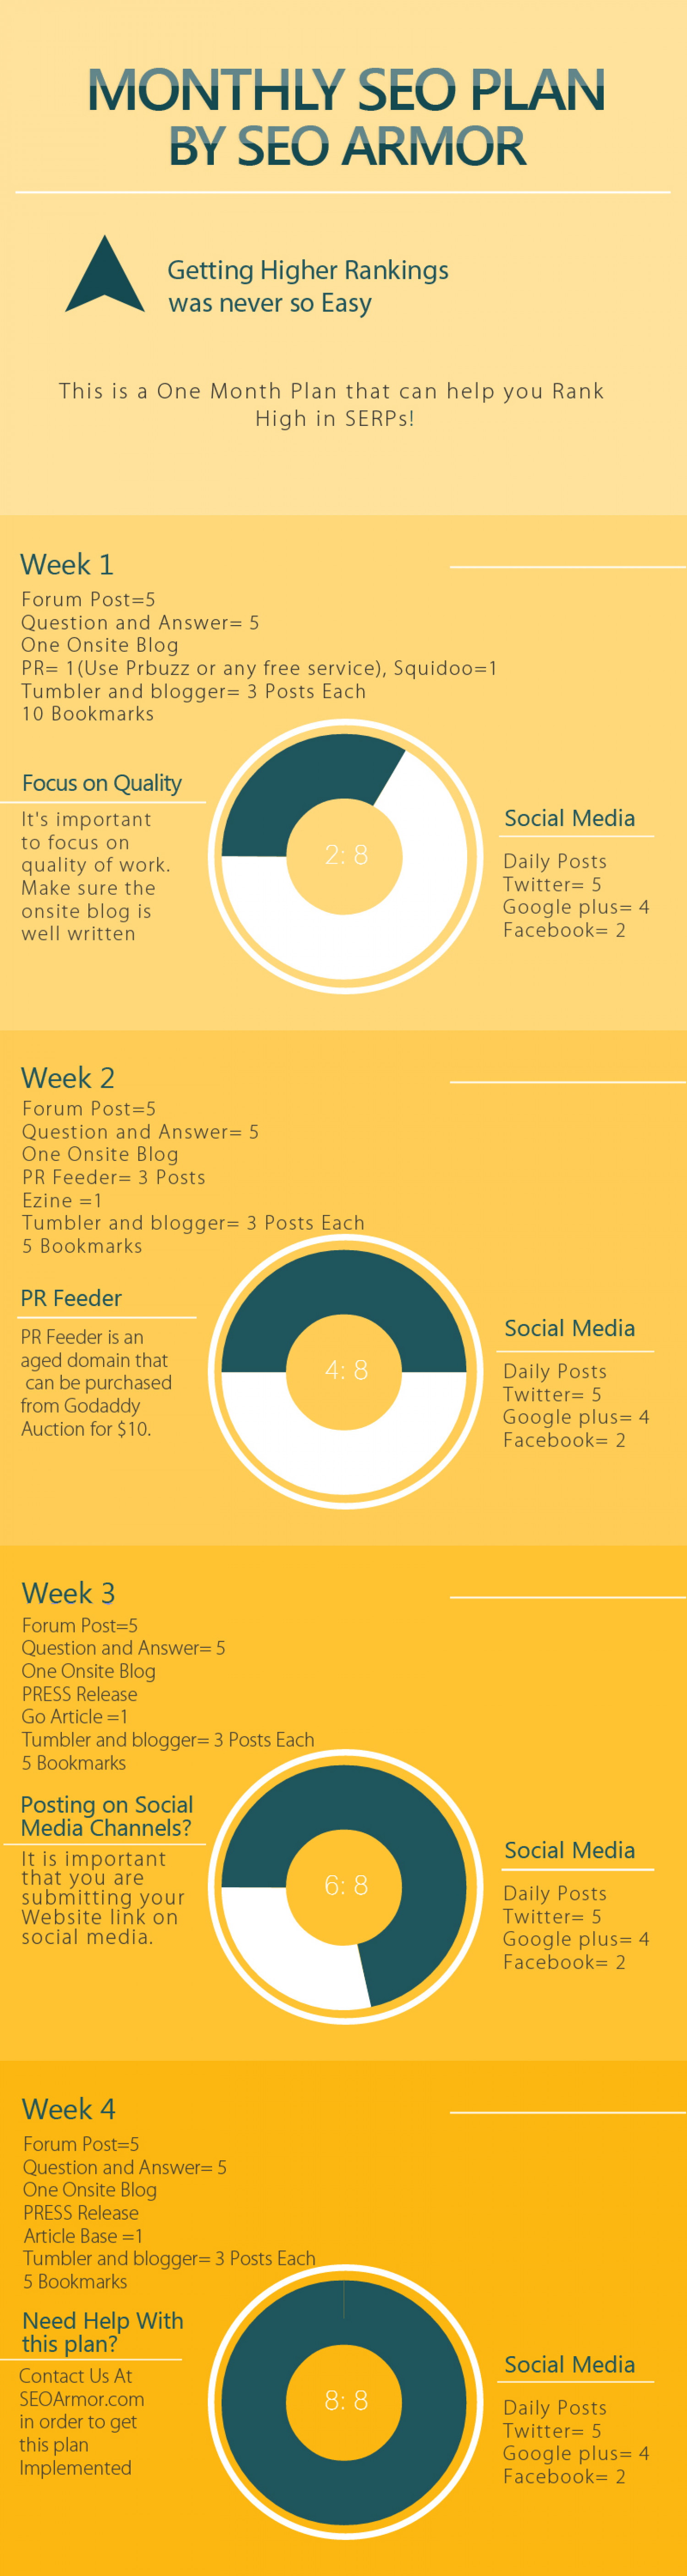 One Month SEO Plan by SEO Armor Infographic